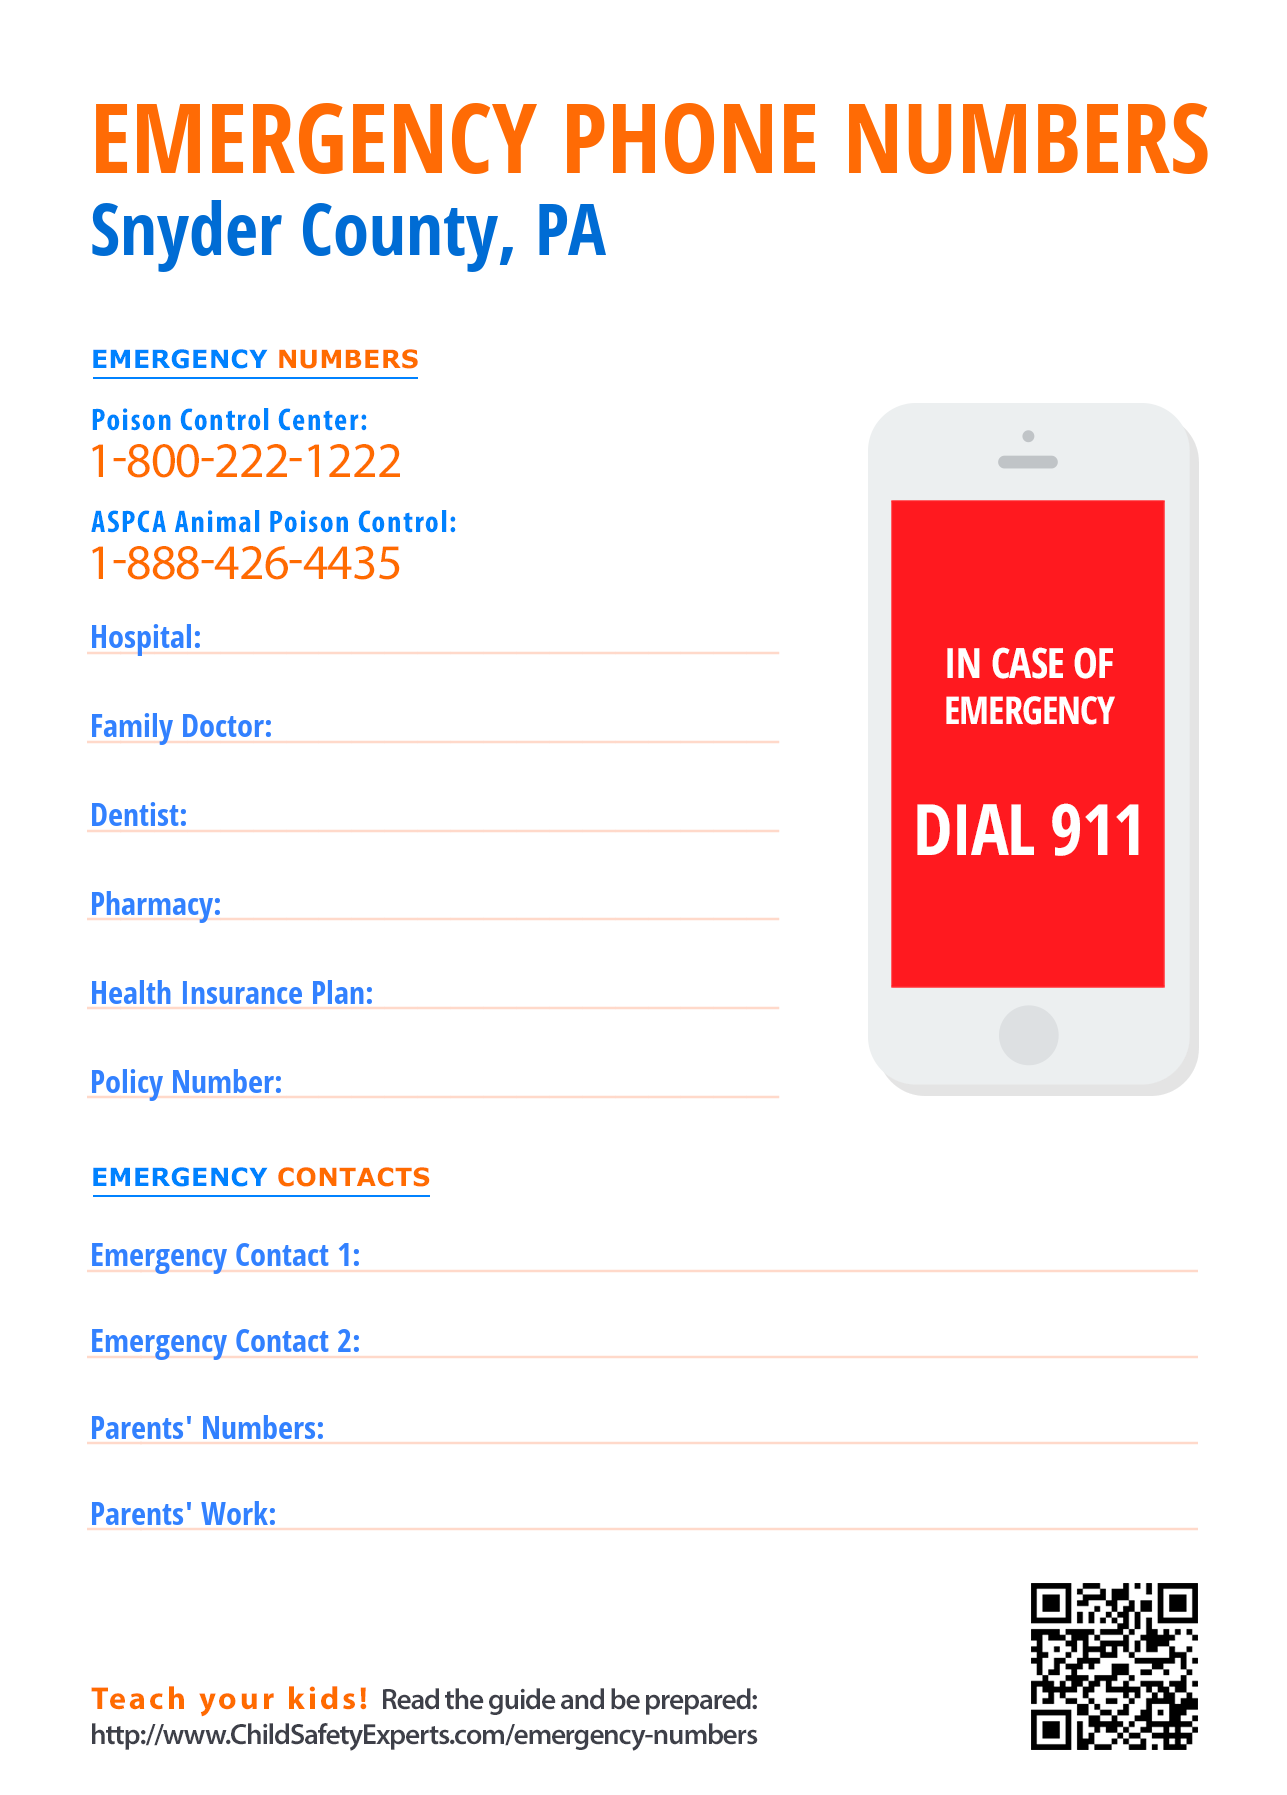 Important emergency phone numbers in Snyder County, Pennsylvania